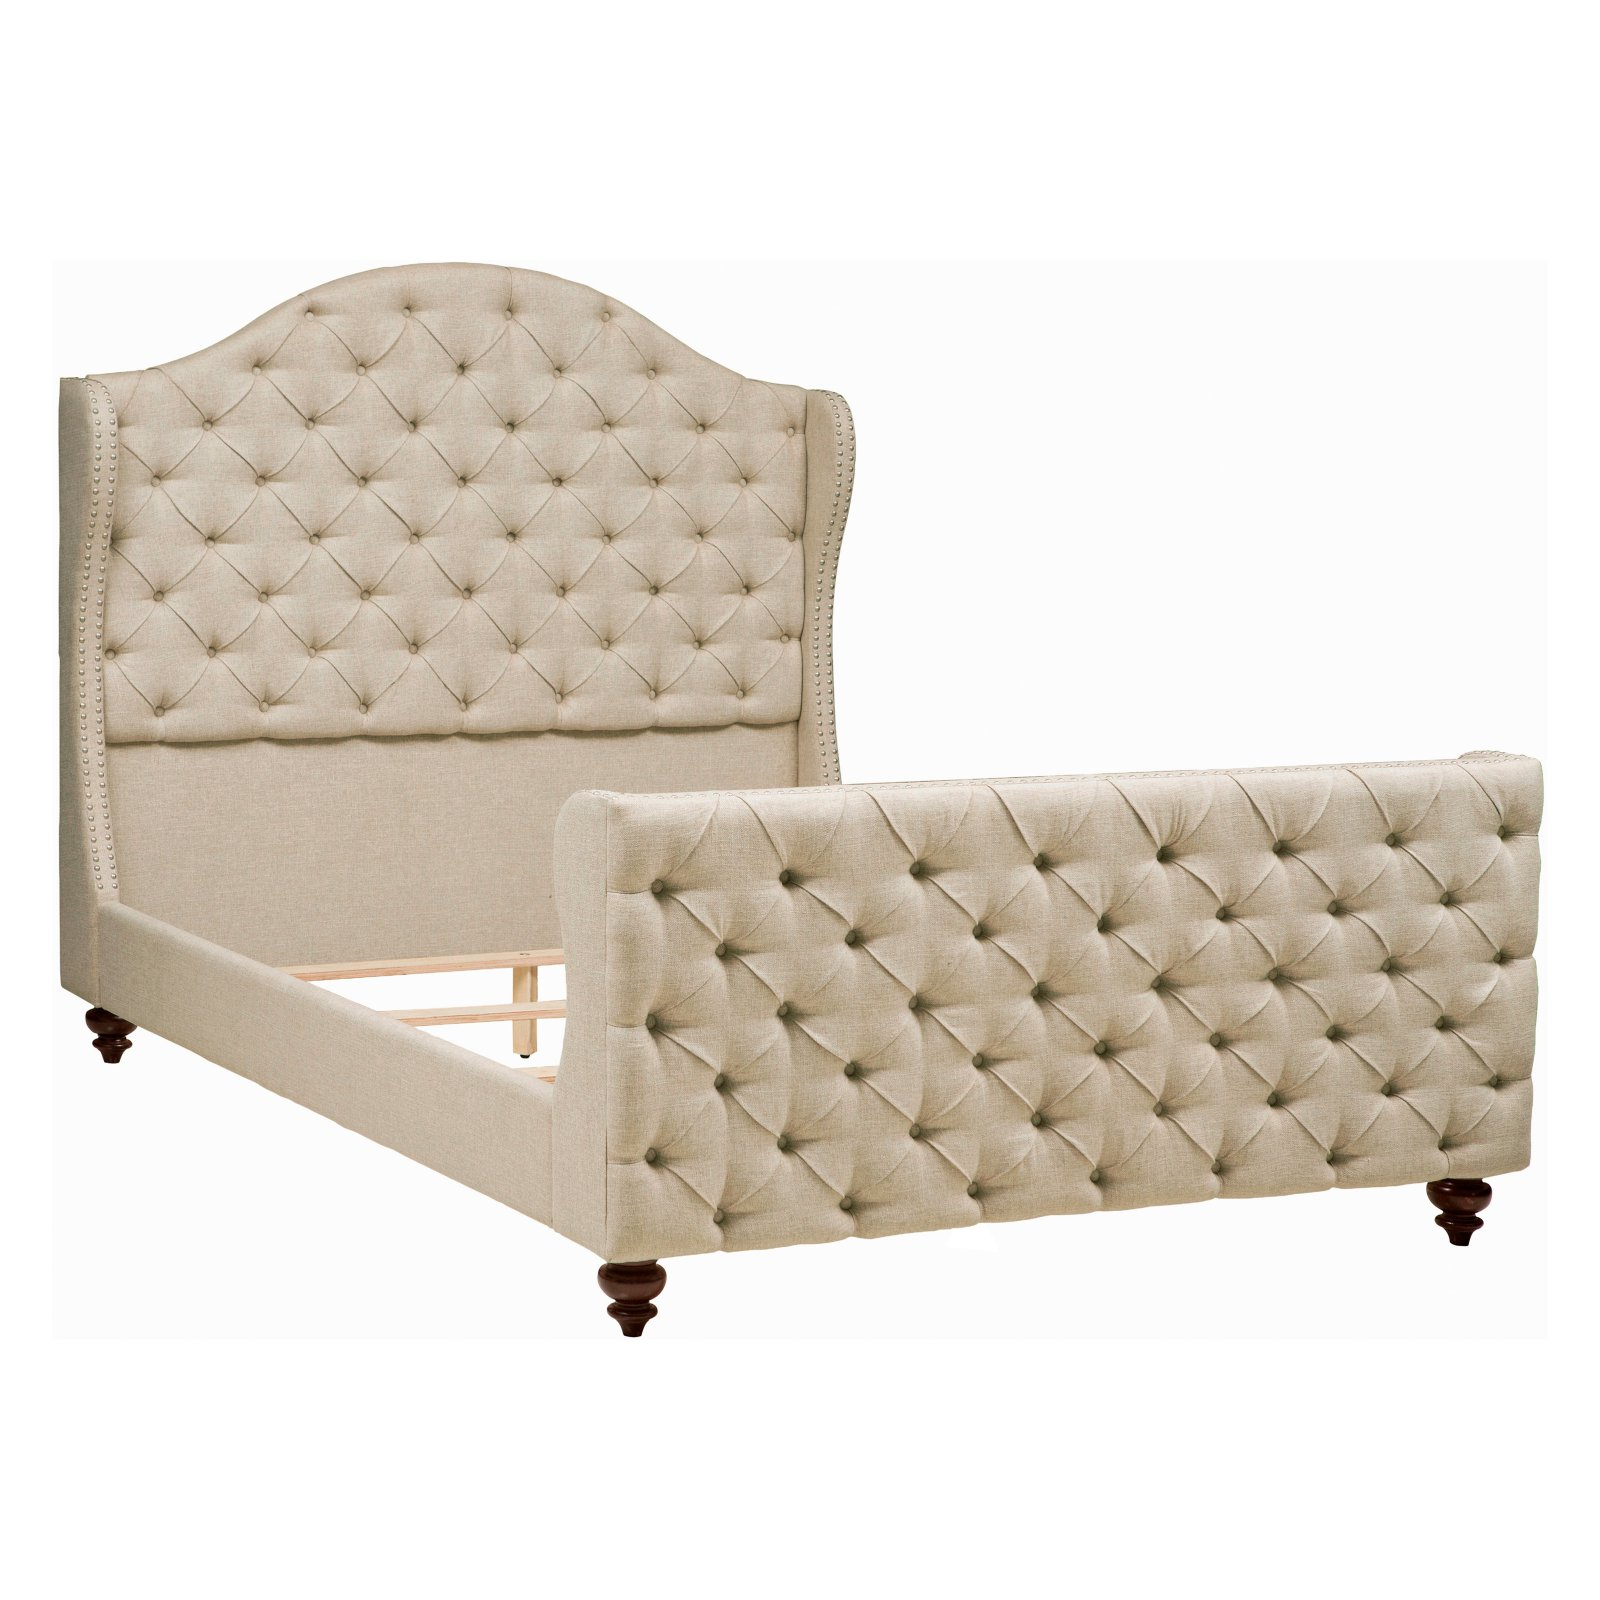 Home Meridian Tufted Wingback Upholstered Platform Bed